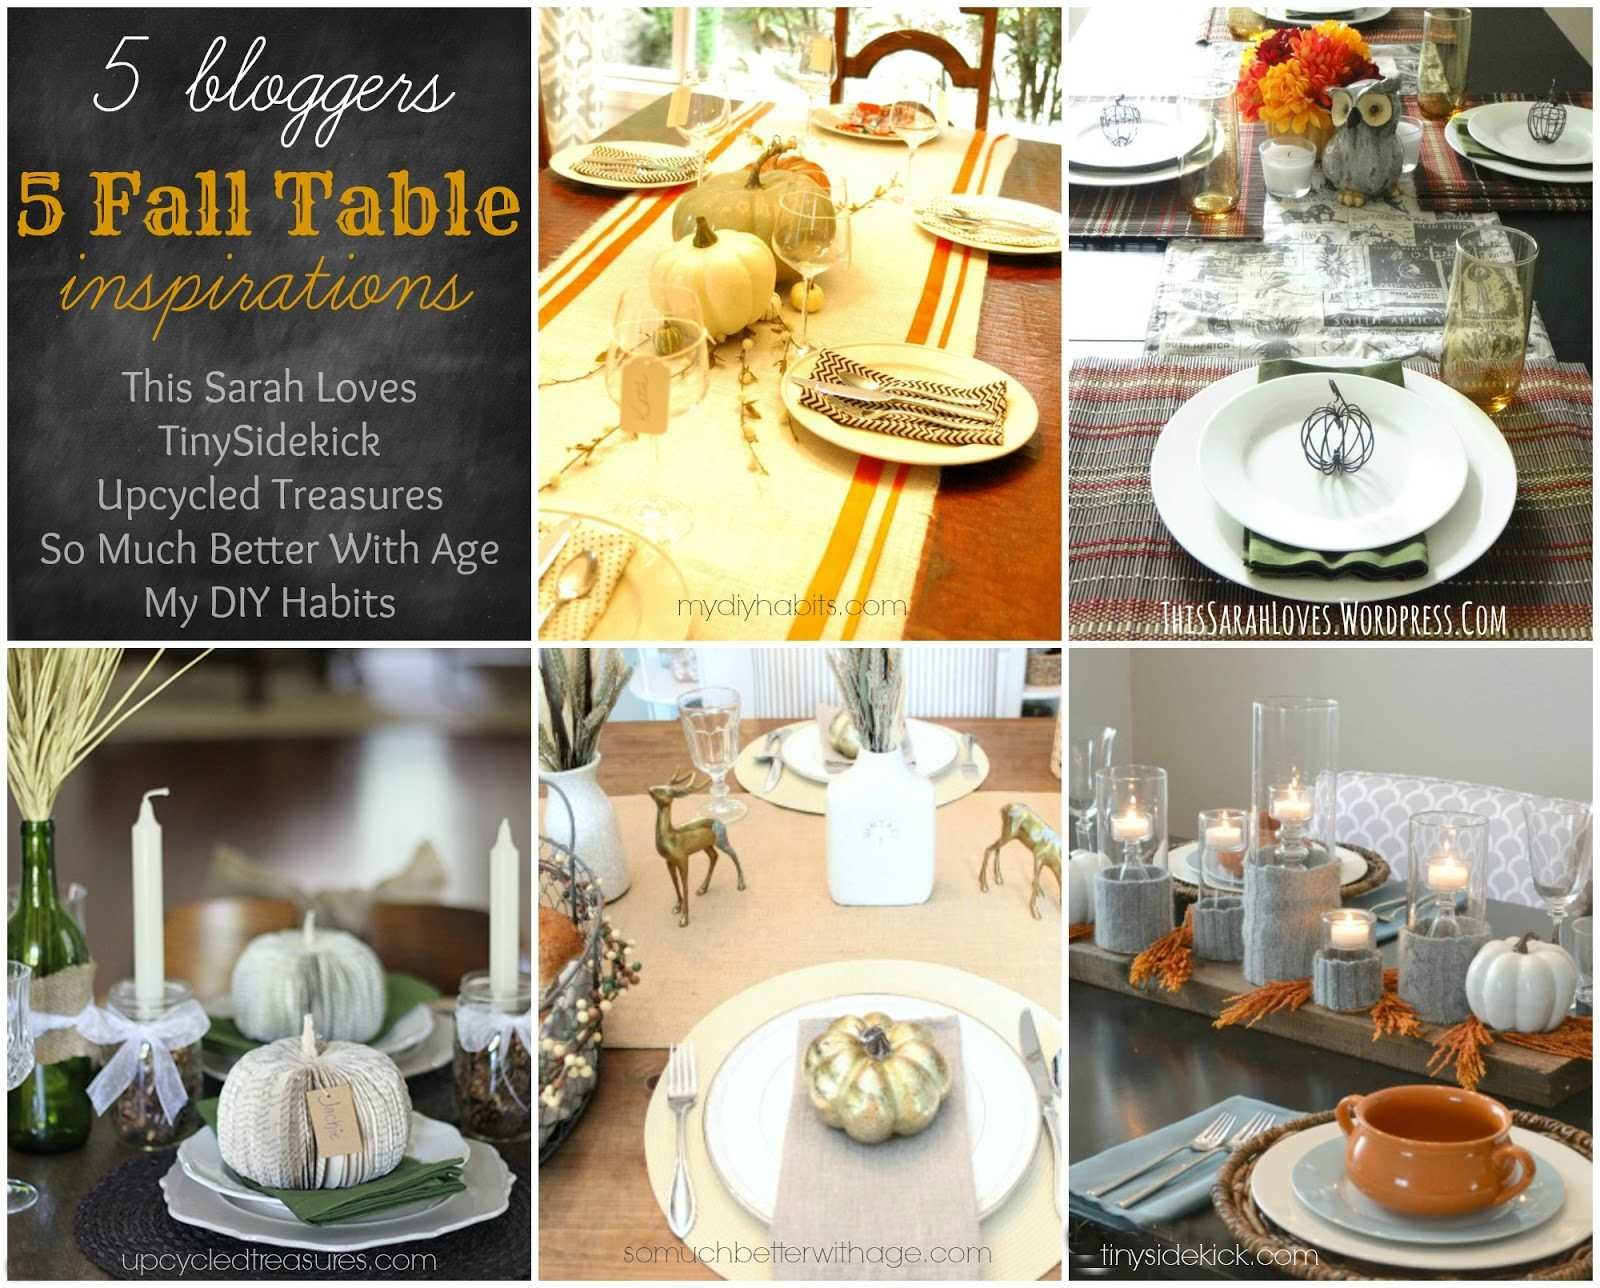 Transform your dining table into something warm and festive with these inspiring fall table ideas! #tablescape #thanksgiving #falltable #falldecor #fallideas